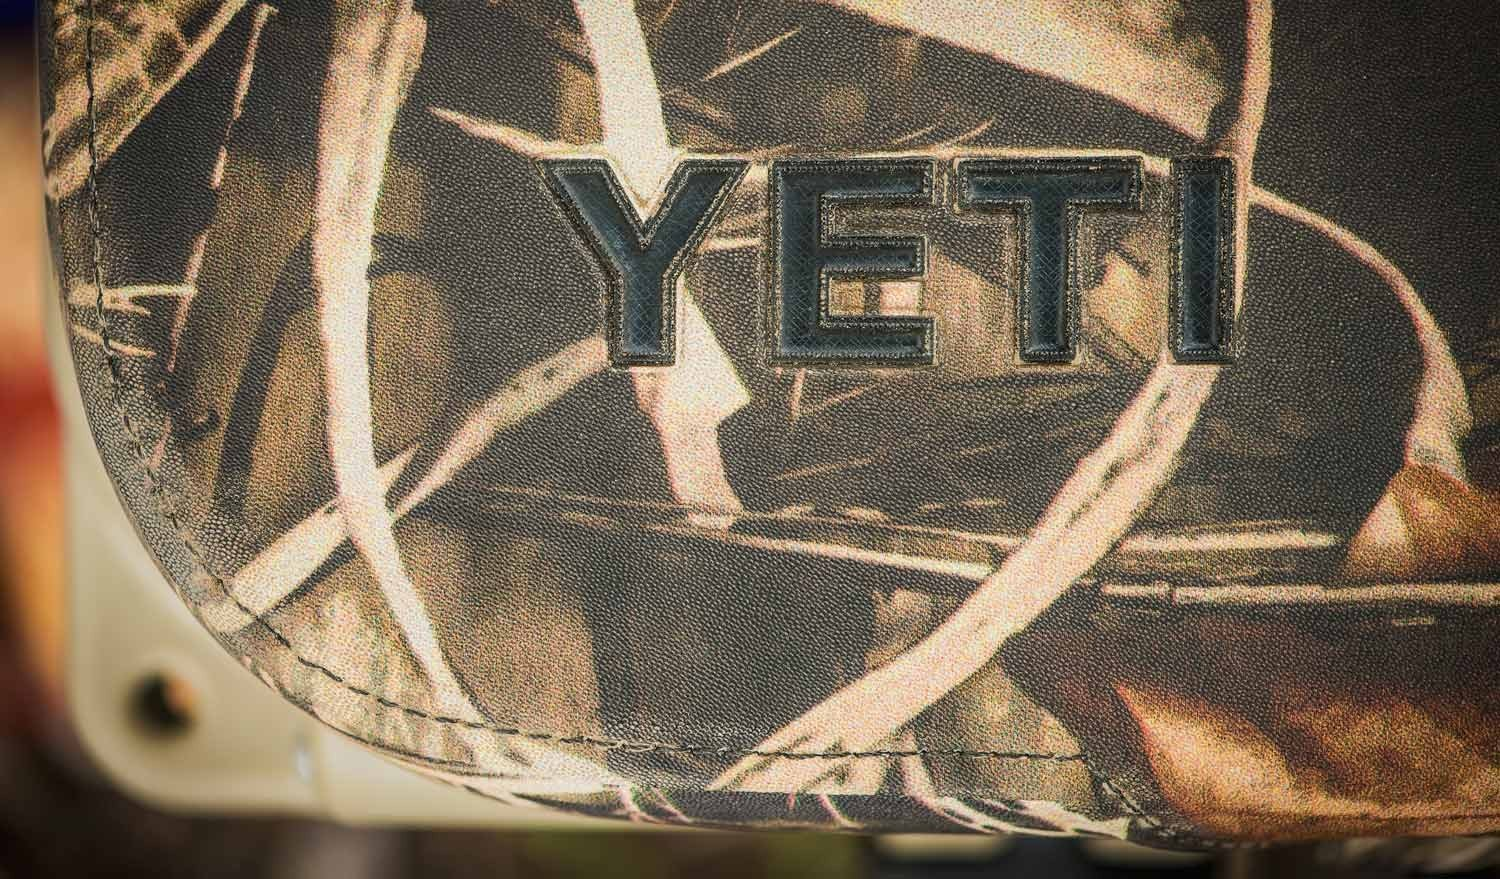 yeti-seatcushion-camo-3-1501246822439